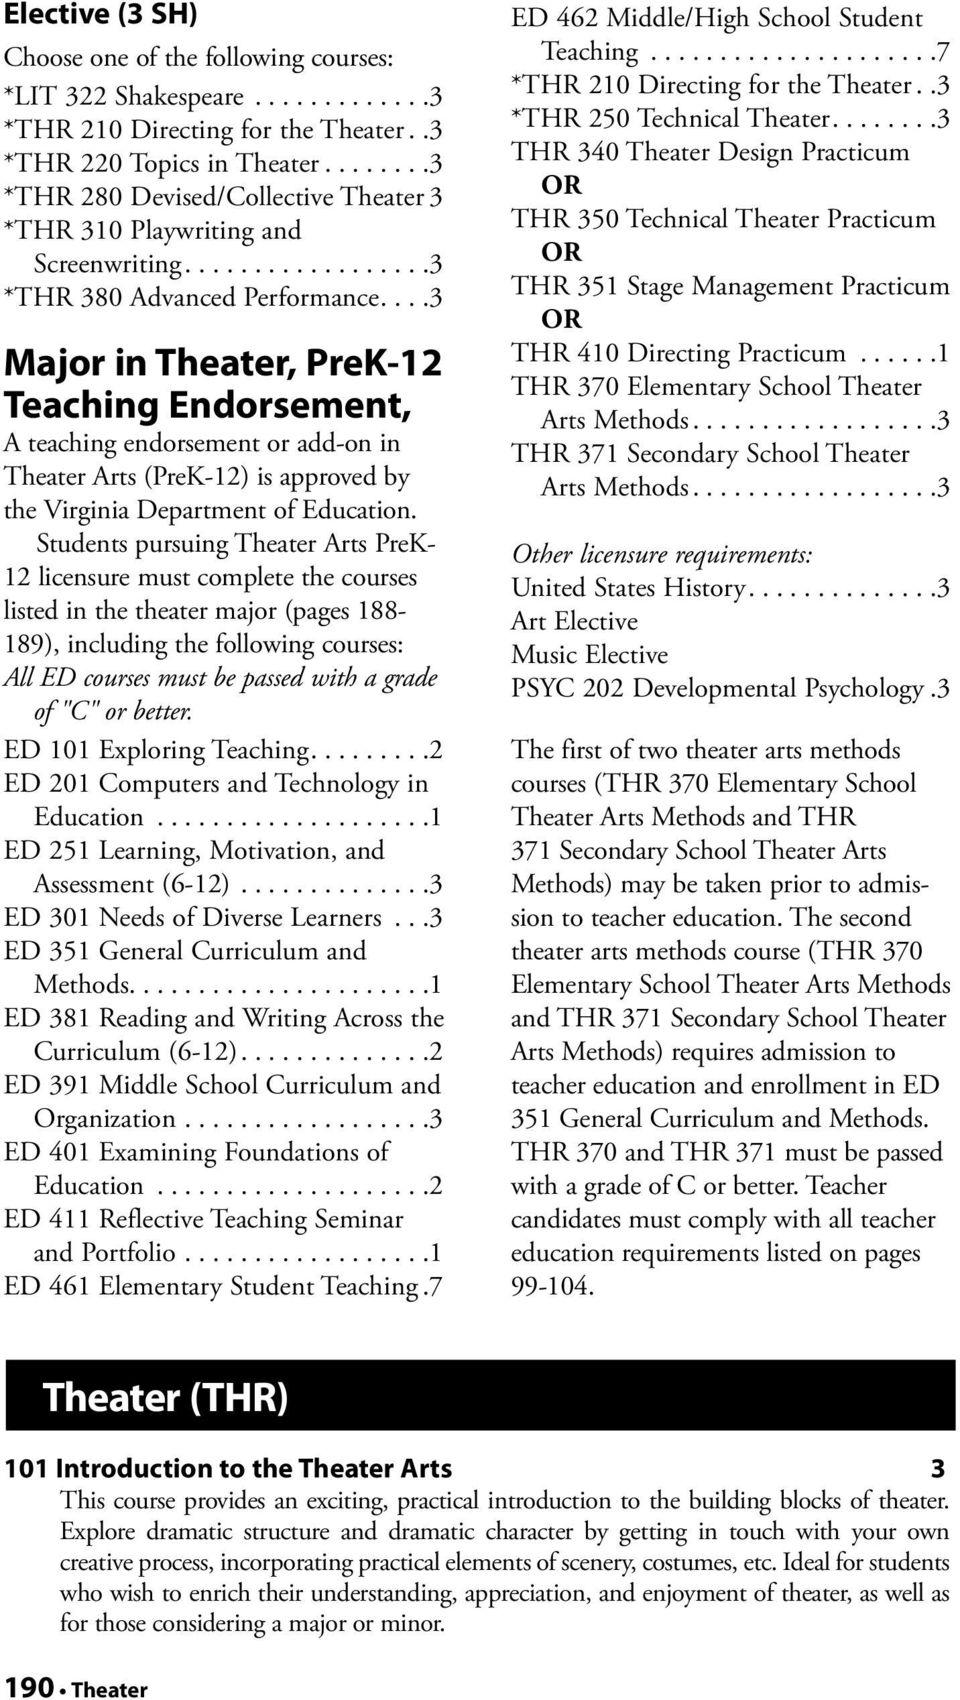 ..3 Major in Theater, PreK-12 Teaching Endorsement, A teaching endorsement or add-on in Theater Arts (PreK-12) is approved by the Virginia Department of Education.